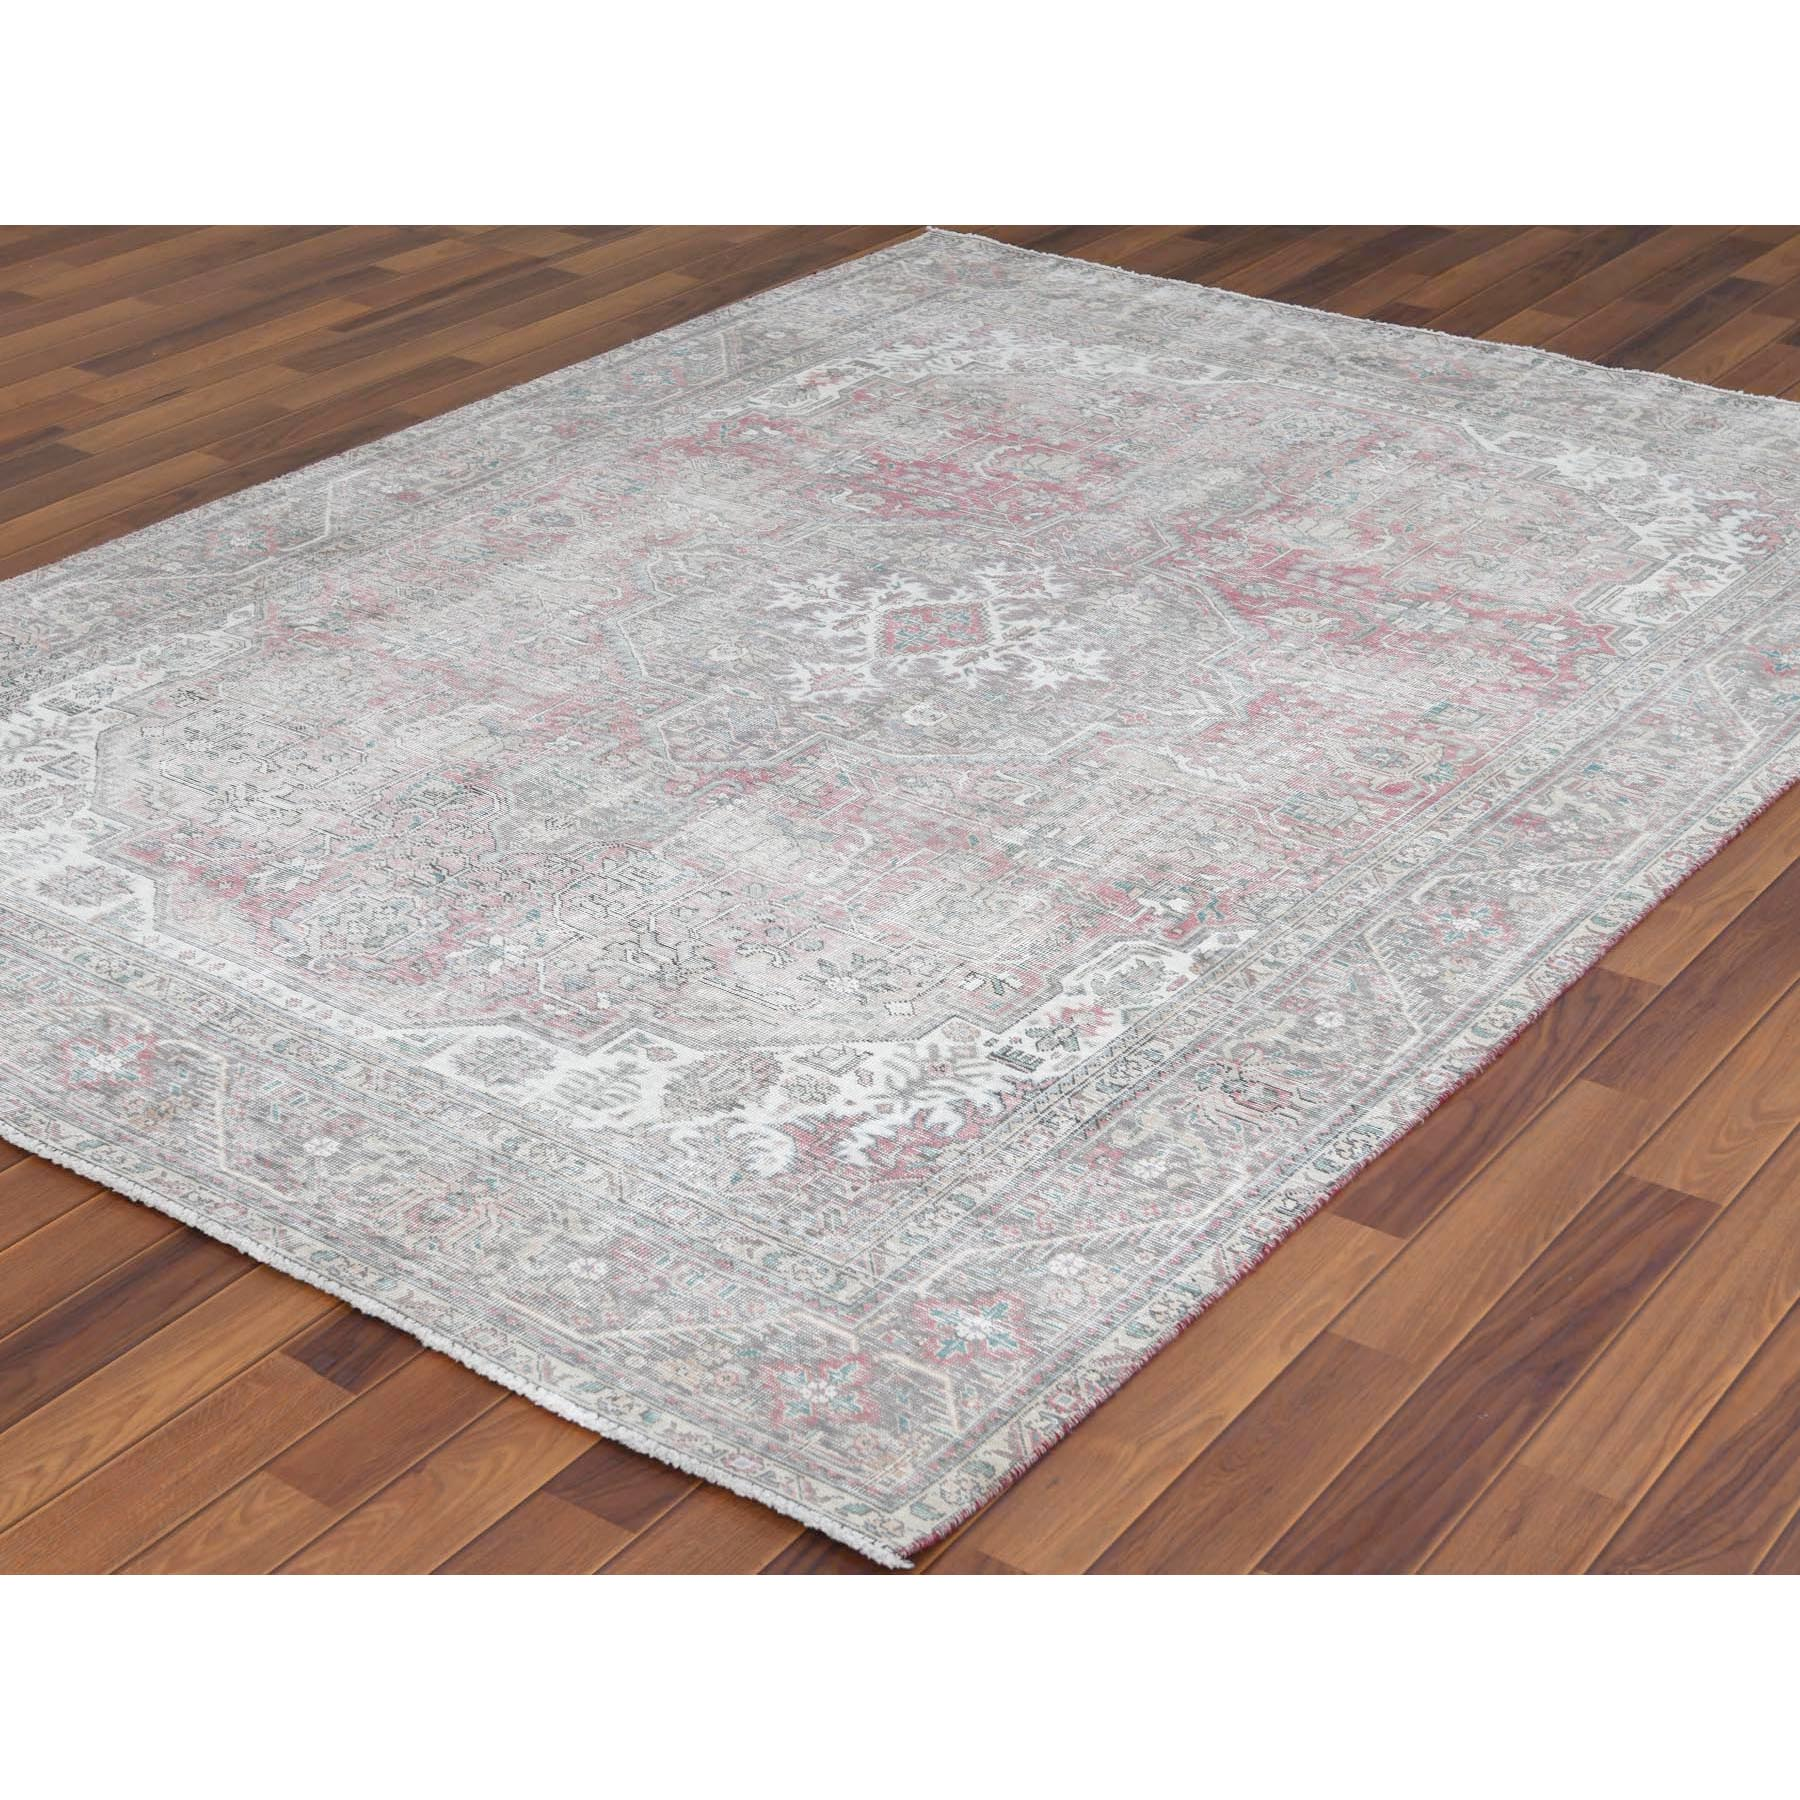 "6'6""x9'4"" Semi Antique Hand Knotted Pink Persian Tabriz With Medallion Design Worn Down Shabby Chic Clean Pure Wool Oriental Rug"